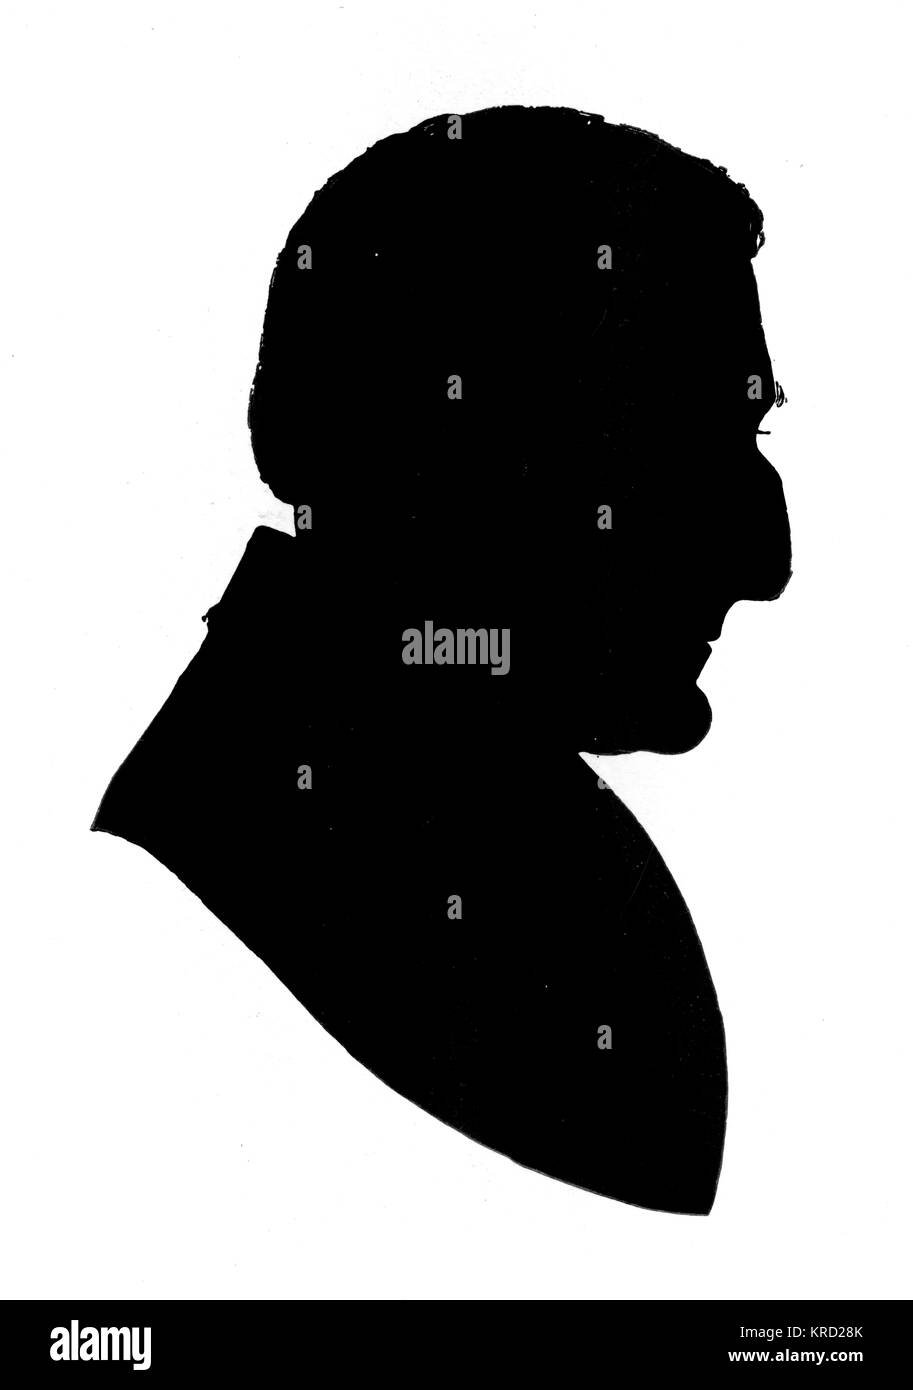 Silhouette portrait of Arthur Wellesley, Duke of Wellington (1769 - 1852), British general and statesman.       - Stock Image